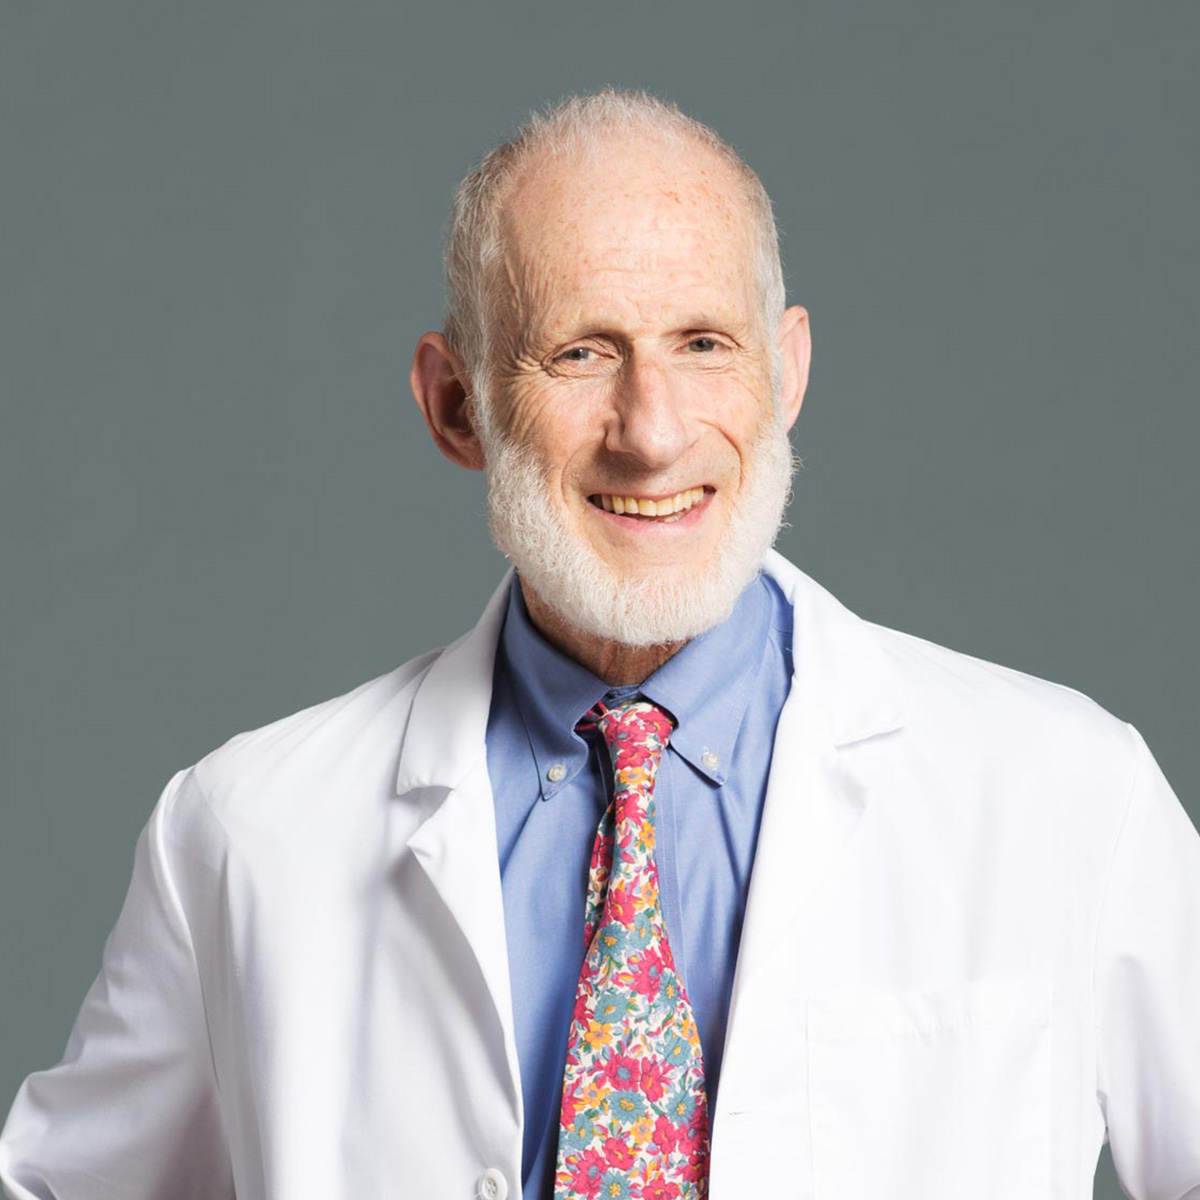 Lewis R. Goldfrank,MD. Toxicology, Emergency Medicine